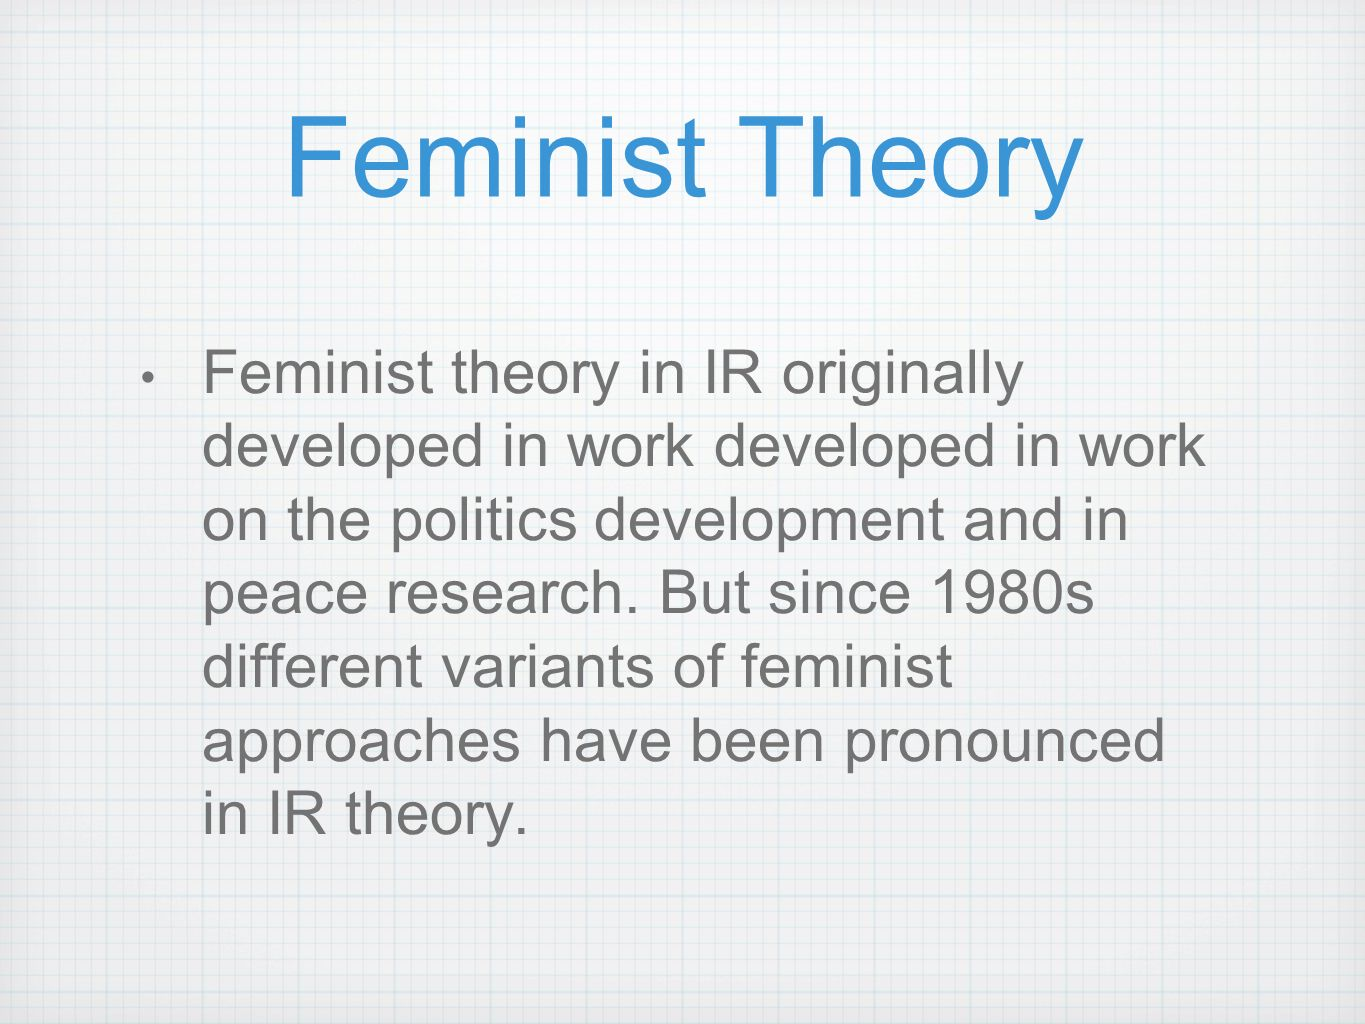 essay on what feminist theory is Book reviews brenda ~ o s s m a n  feminism after the critique of  feminism review of visible women: essays on feminist legal theory and.